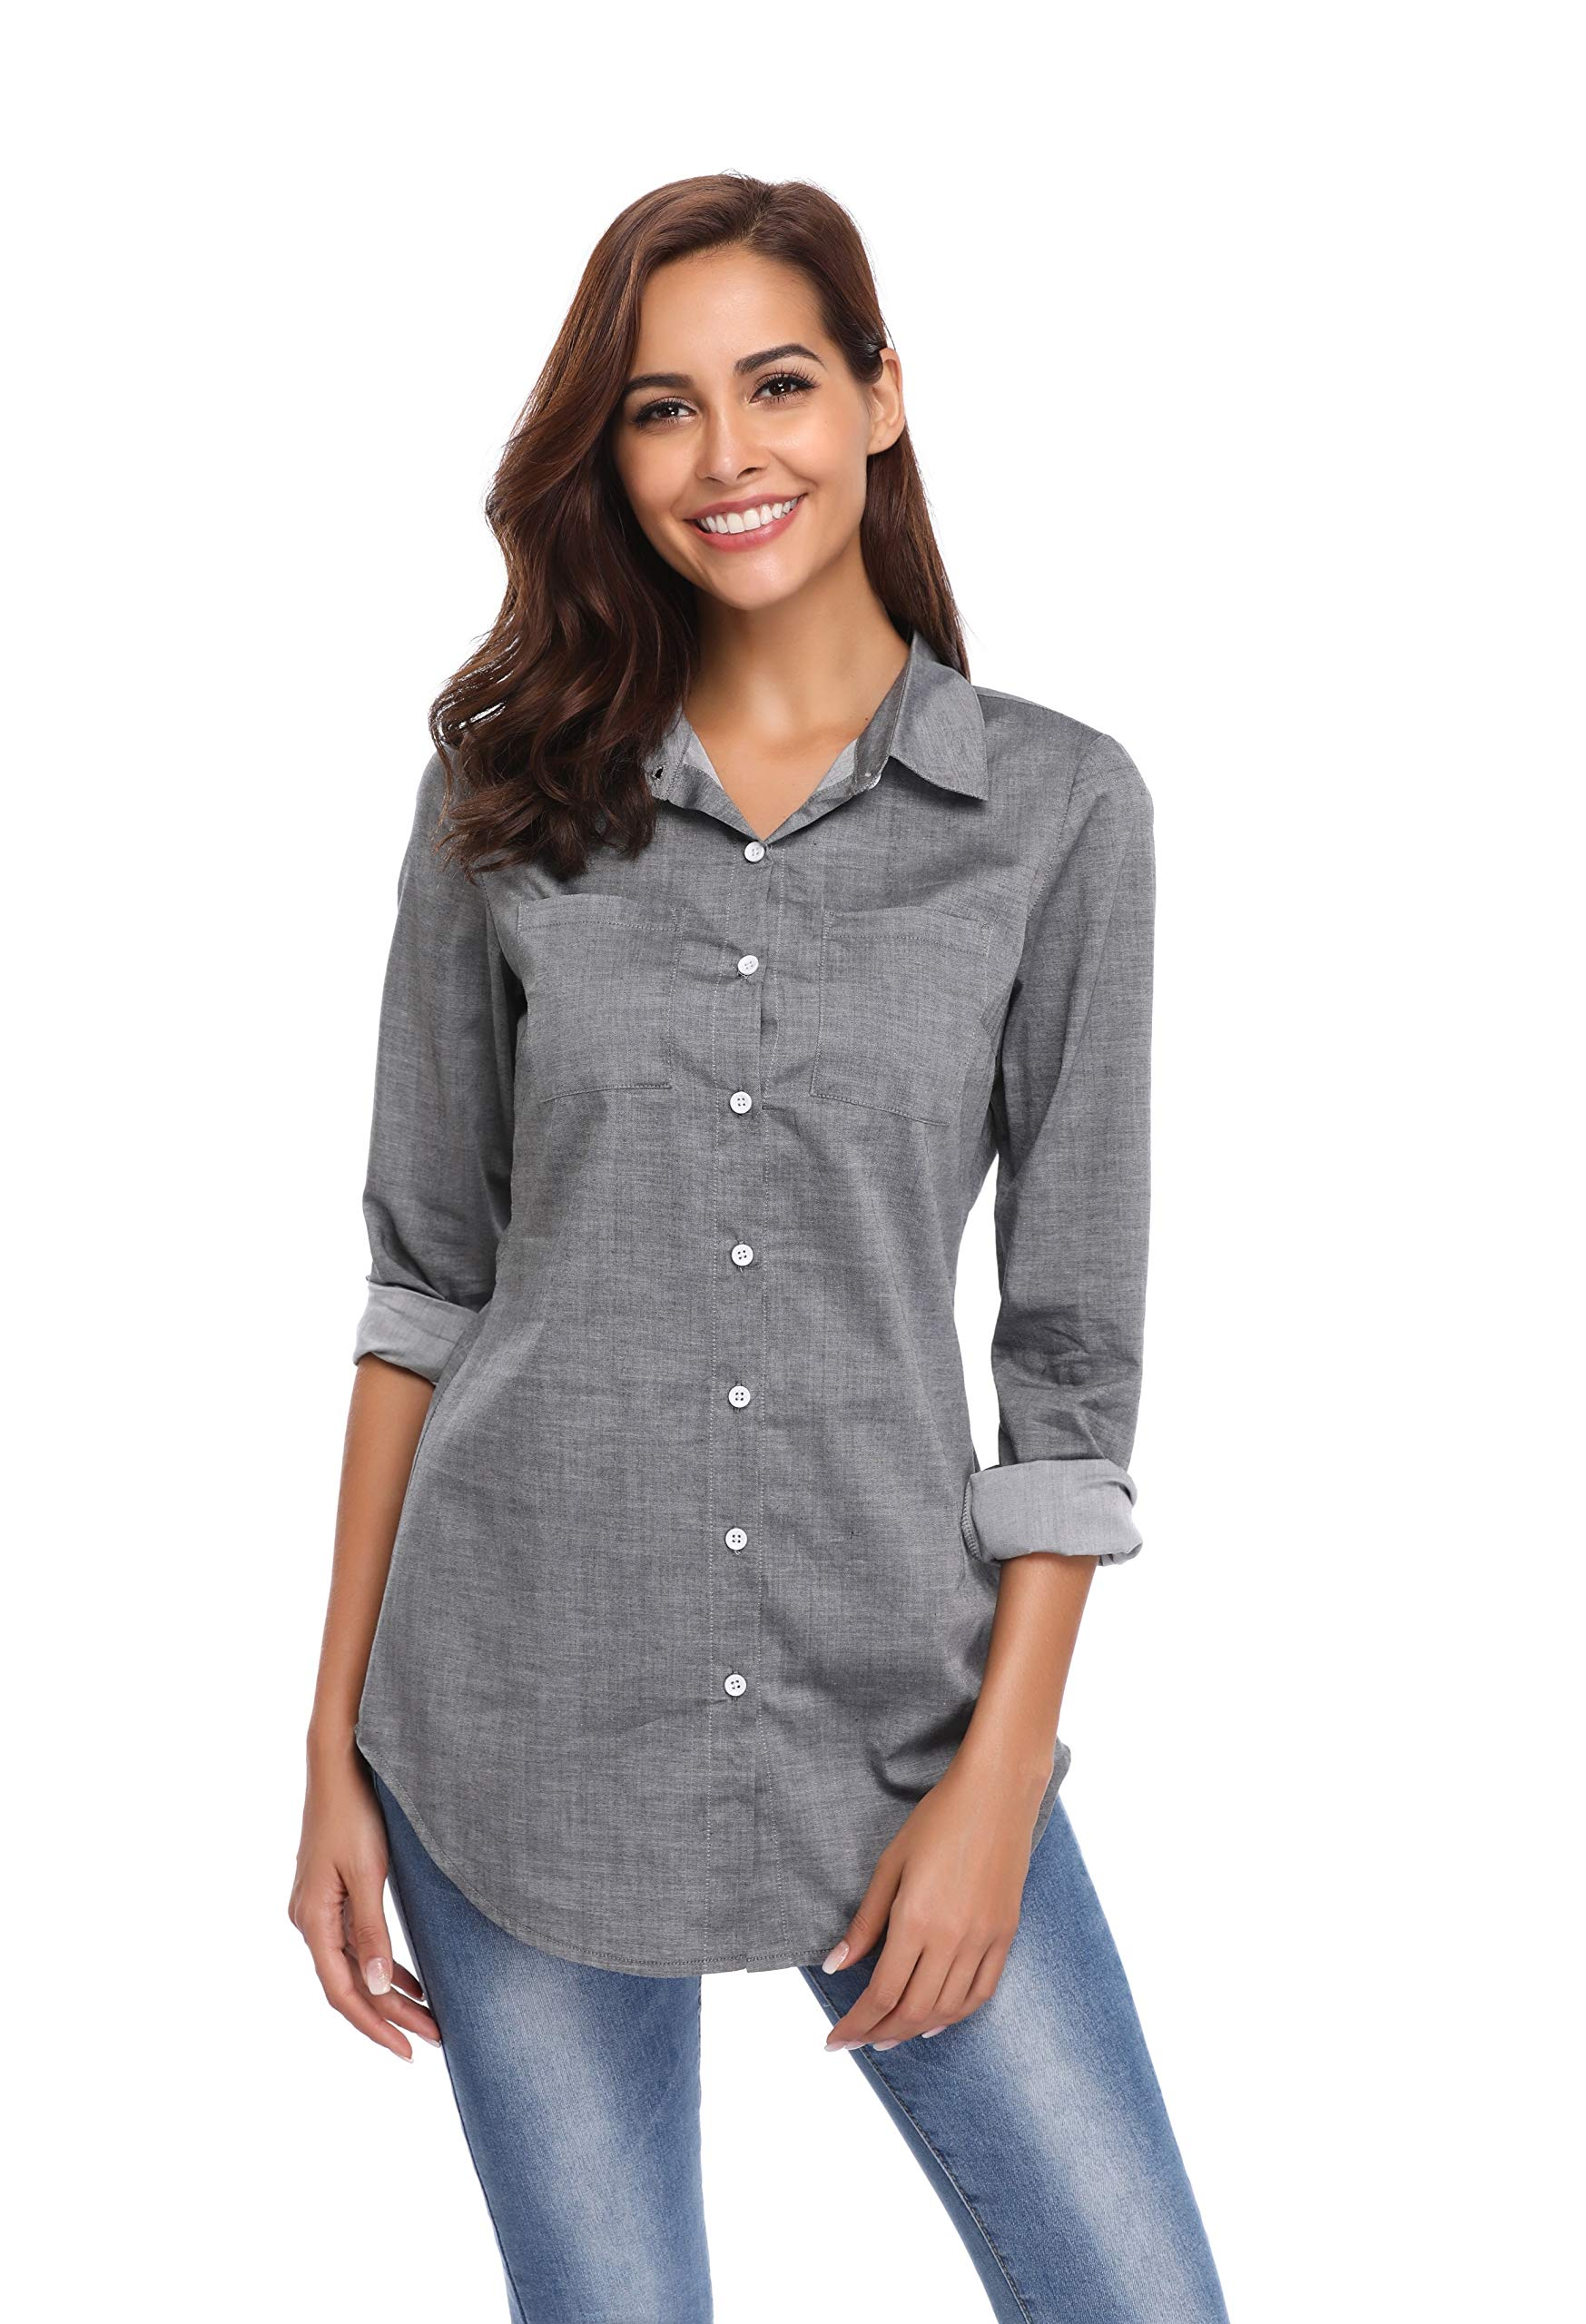 Argstar Women's Chambray Button Down Shirt Long Sleeve Jeans Top,Gray,Large (US 12-14) by Argstar (Image #2)